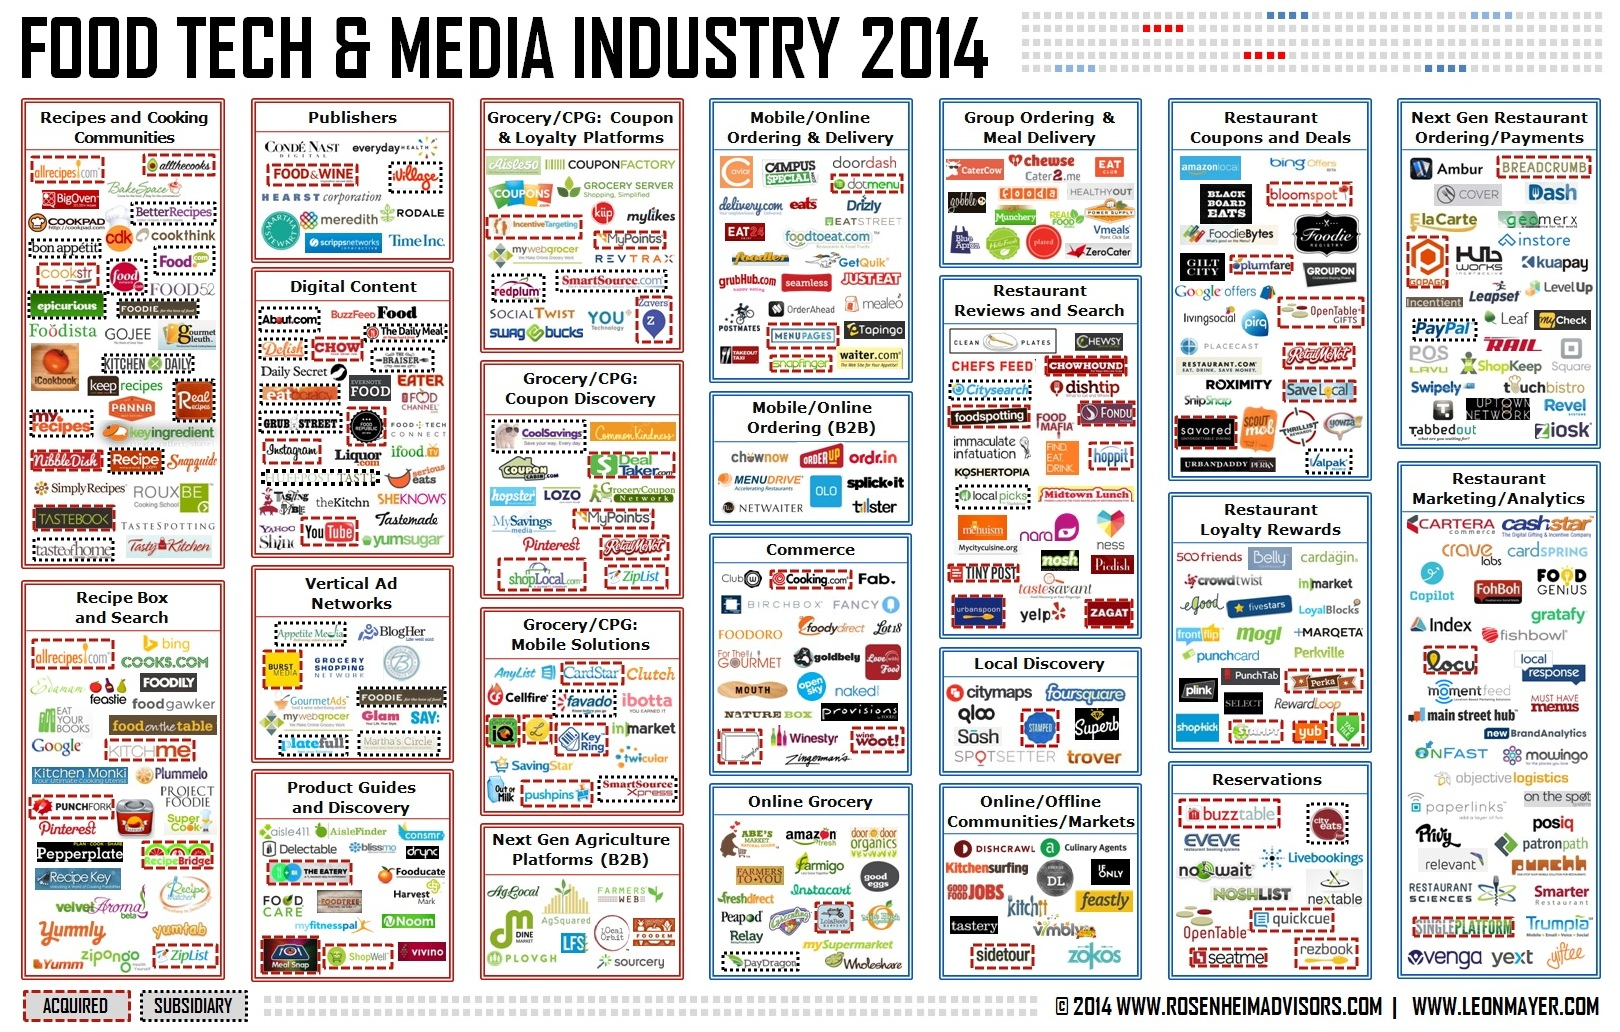 Food Tech and Media Industry 2014 - Rosenheim Advisors